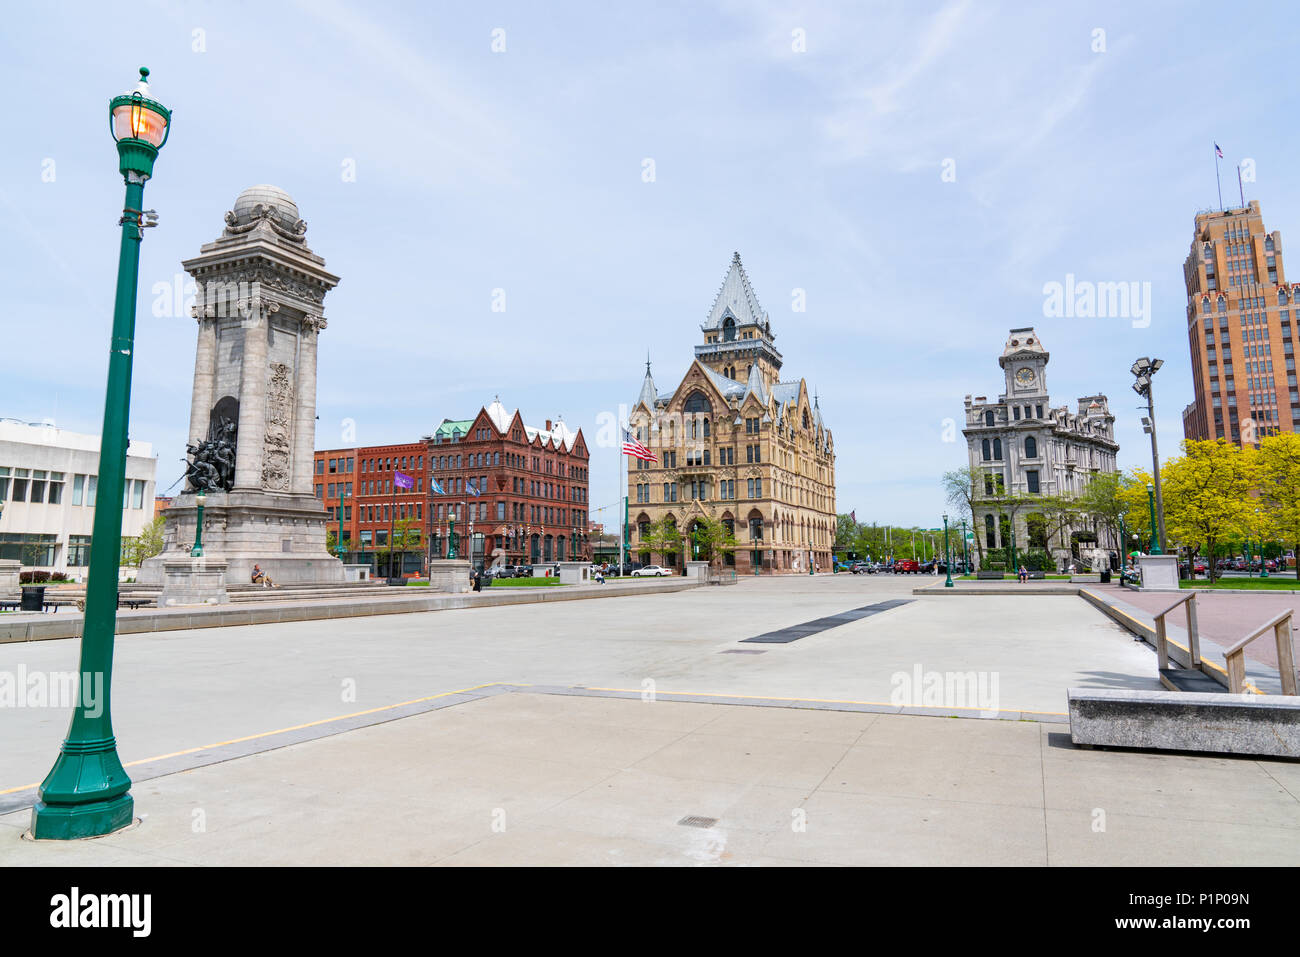 SYRACUSE, NY - MAY 14, 2018:  Clinton Square in downtown Syracuse, New York - Stock Image